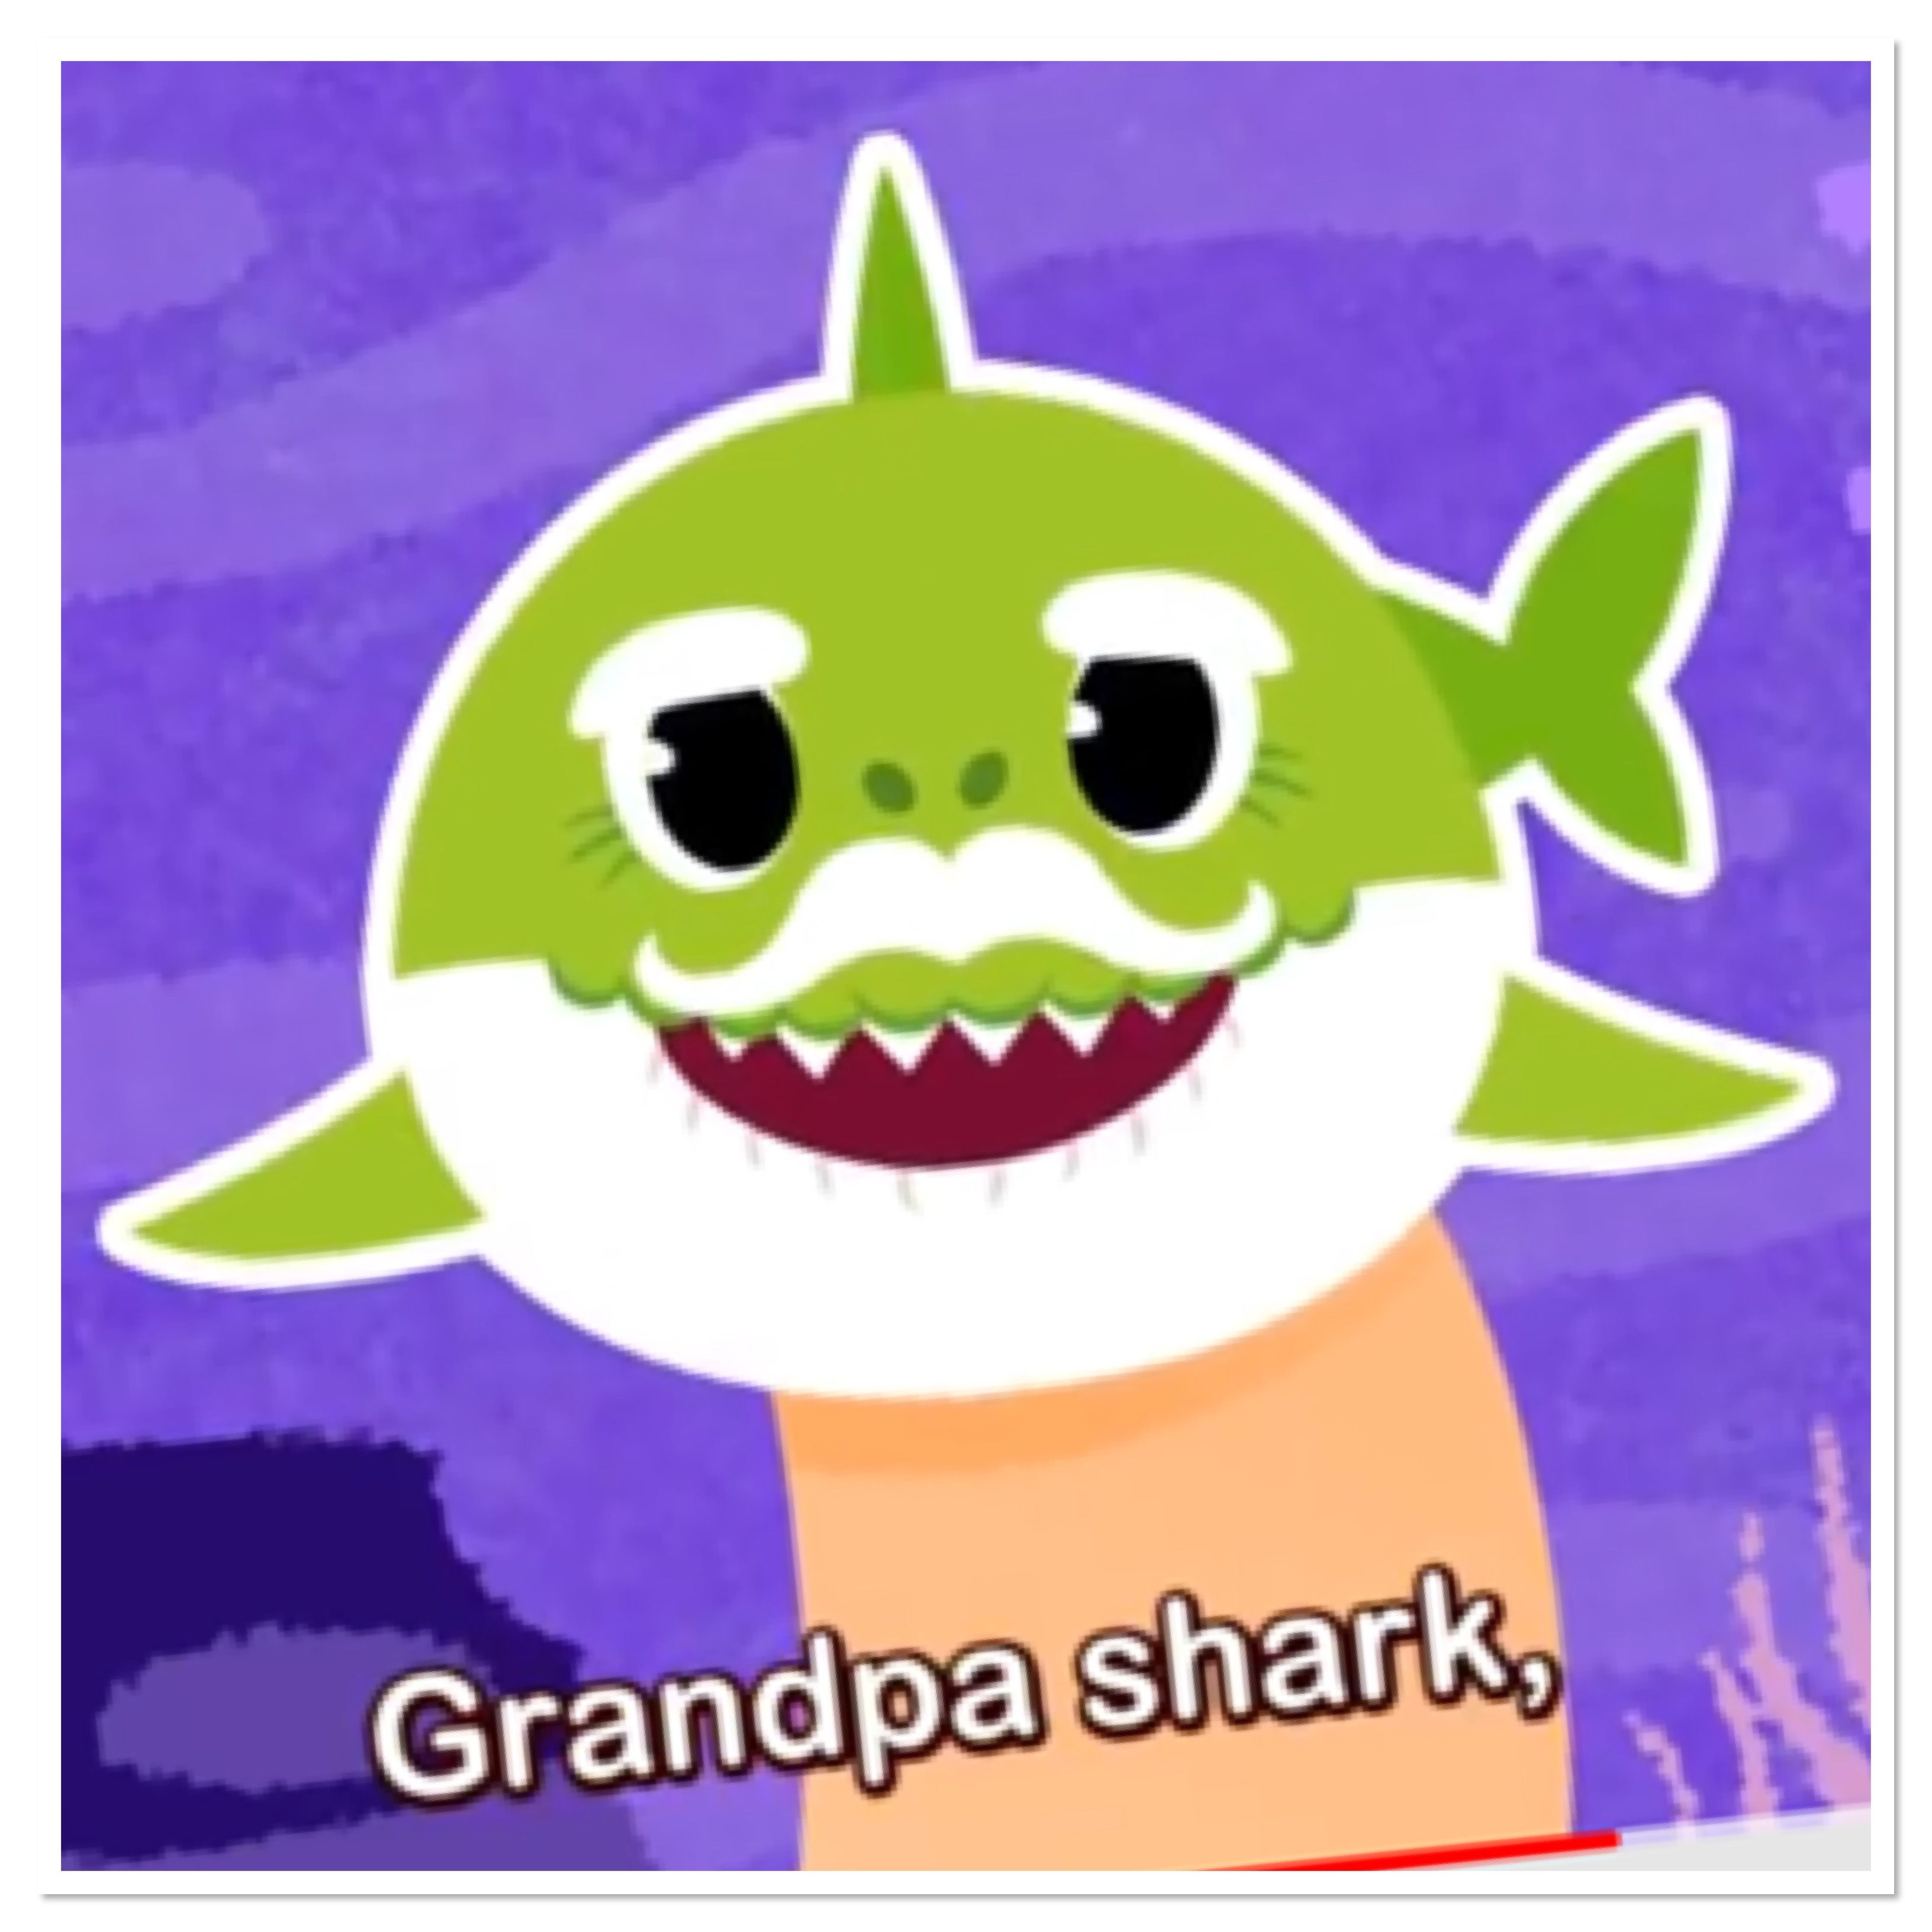 Abuelo shark clipart clipart freeuse library Pin by Karena Carrillo on Baby shark in 2019 | Baby shark, Shark ... clipart freeuse library